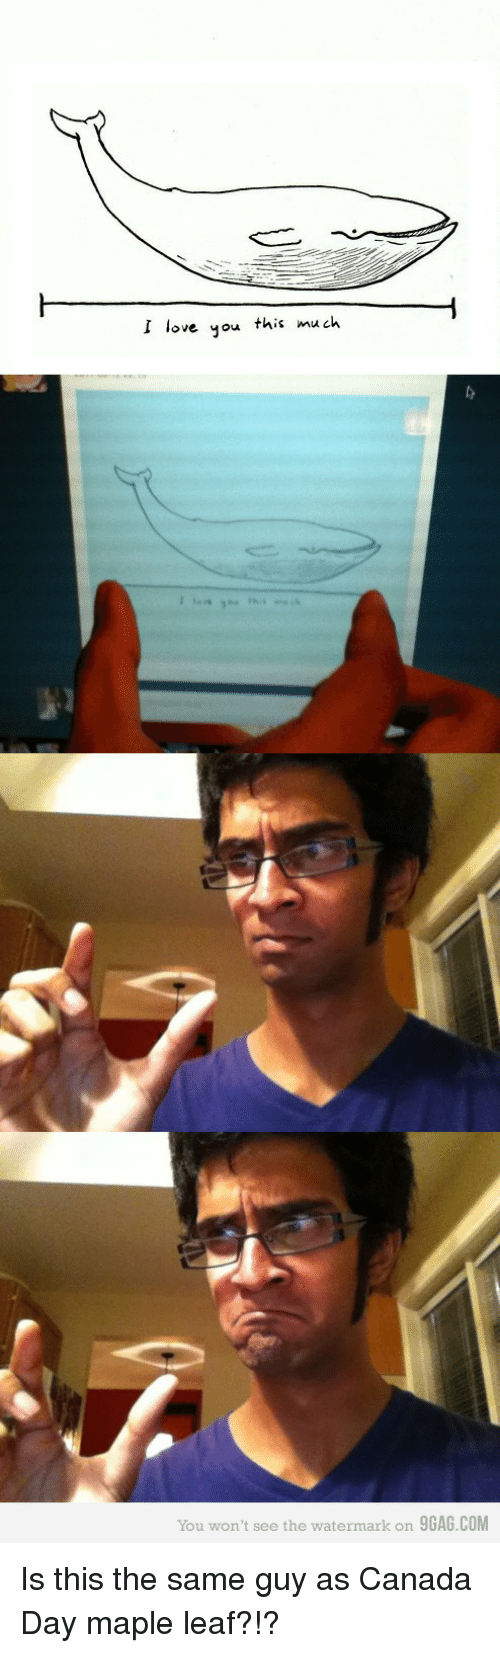 9gag, Love, and I Love You: I love you this much  You won't see the watermark on 9GAG.COM Is this the same guy as Canada Day maple leaf?!?